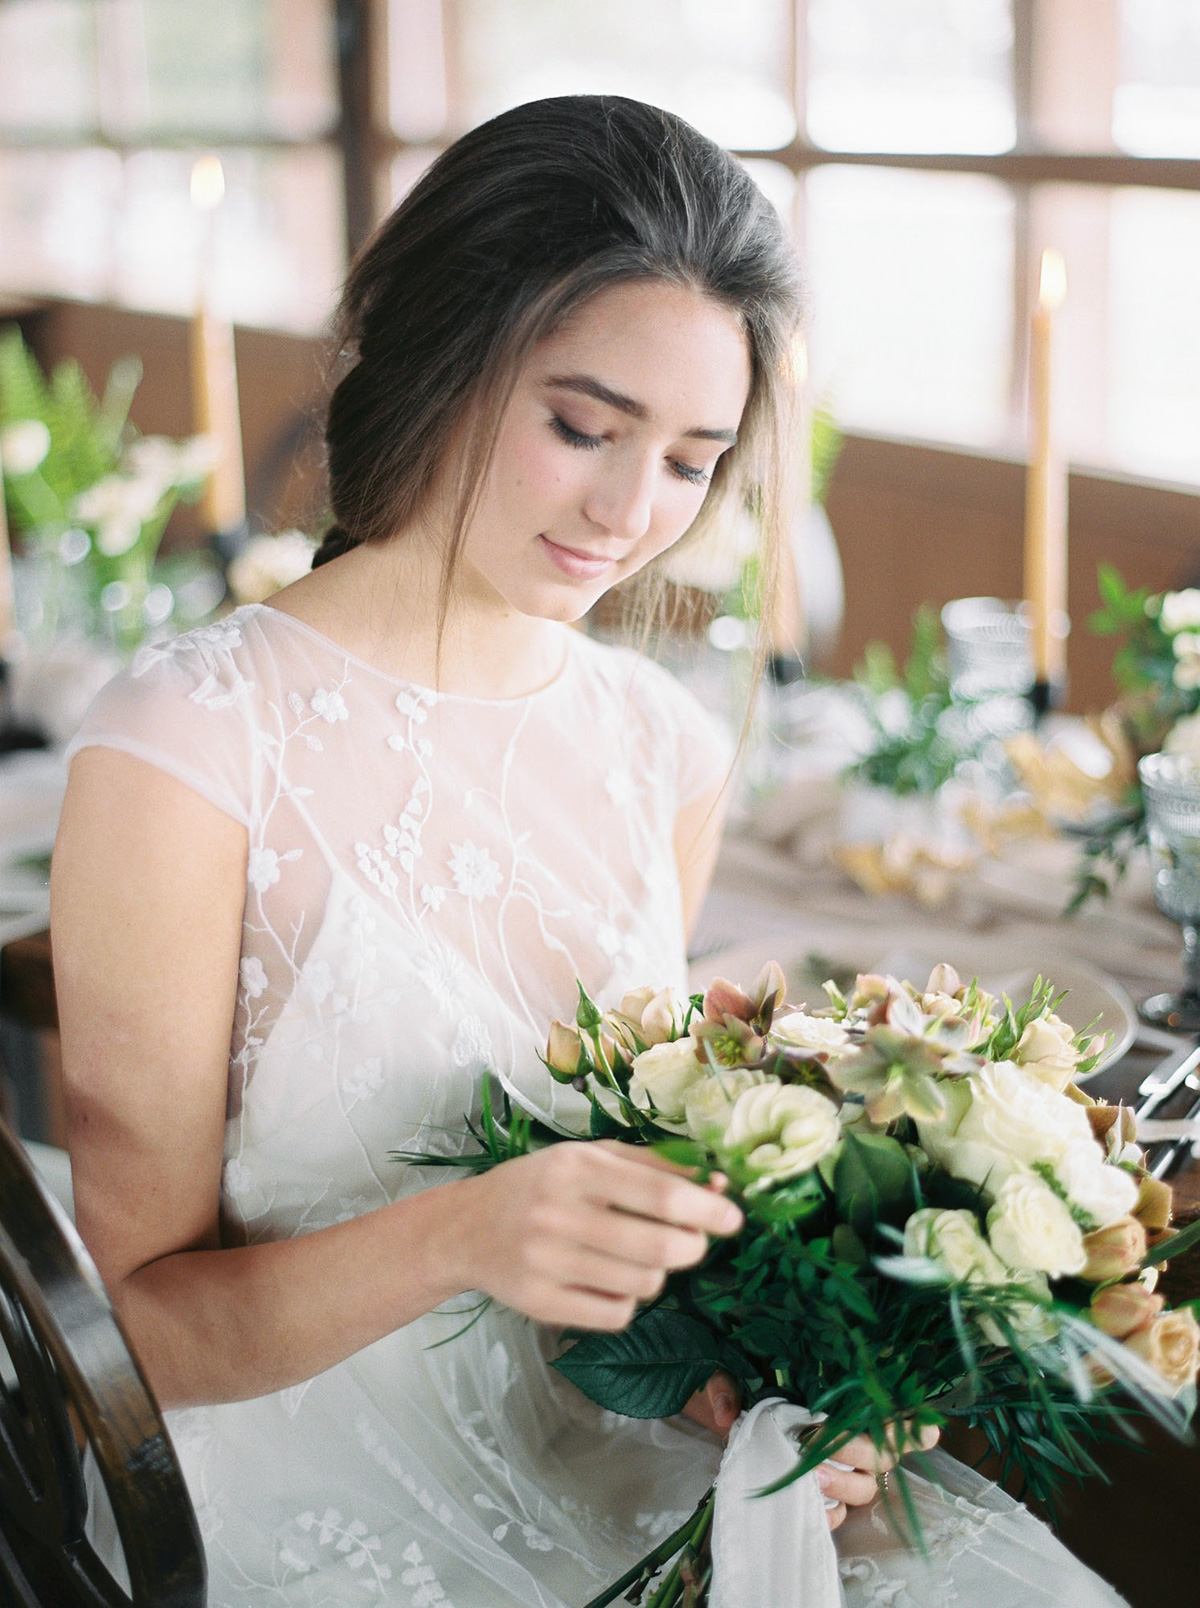 will-reid-photo-vineyard-bride-swish-list-kurtz-orchards-market-niagara-on-the-lake-wedding-editorial-23.jpg